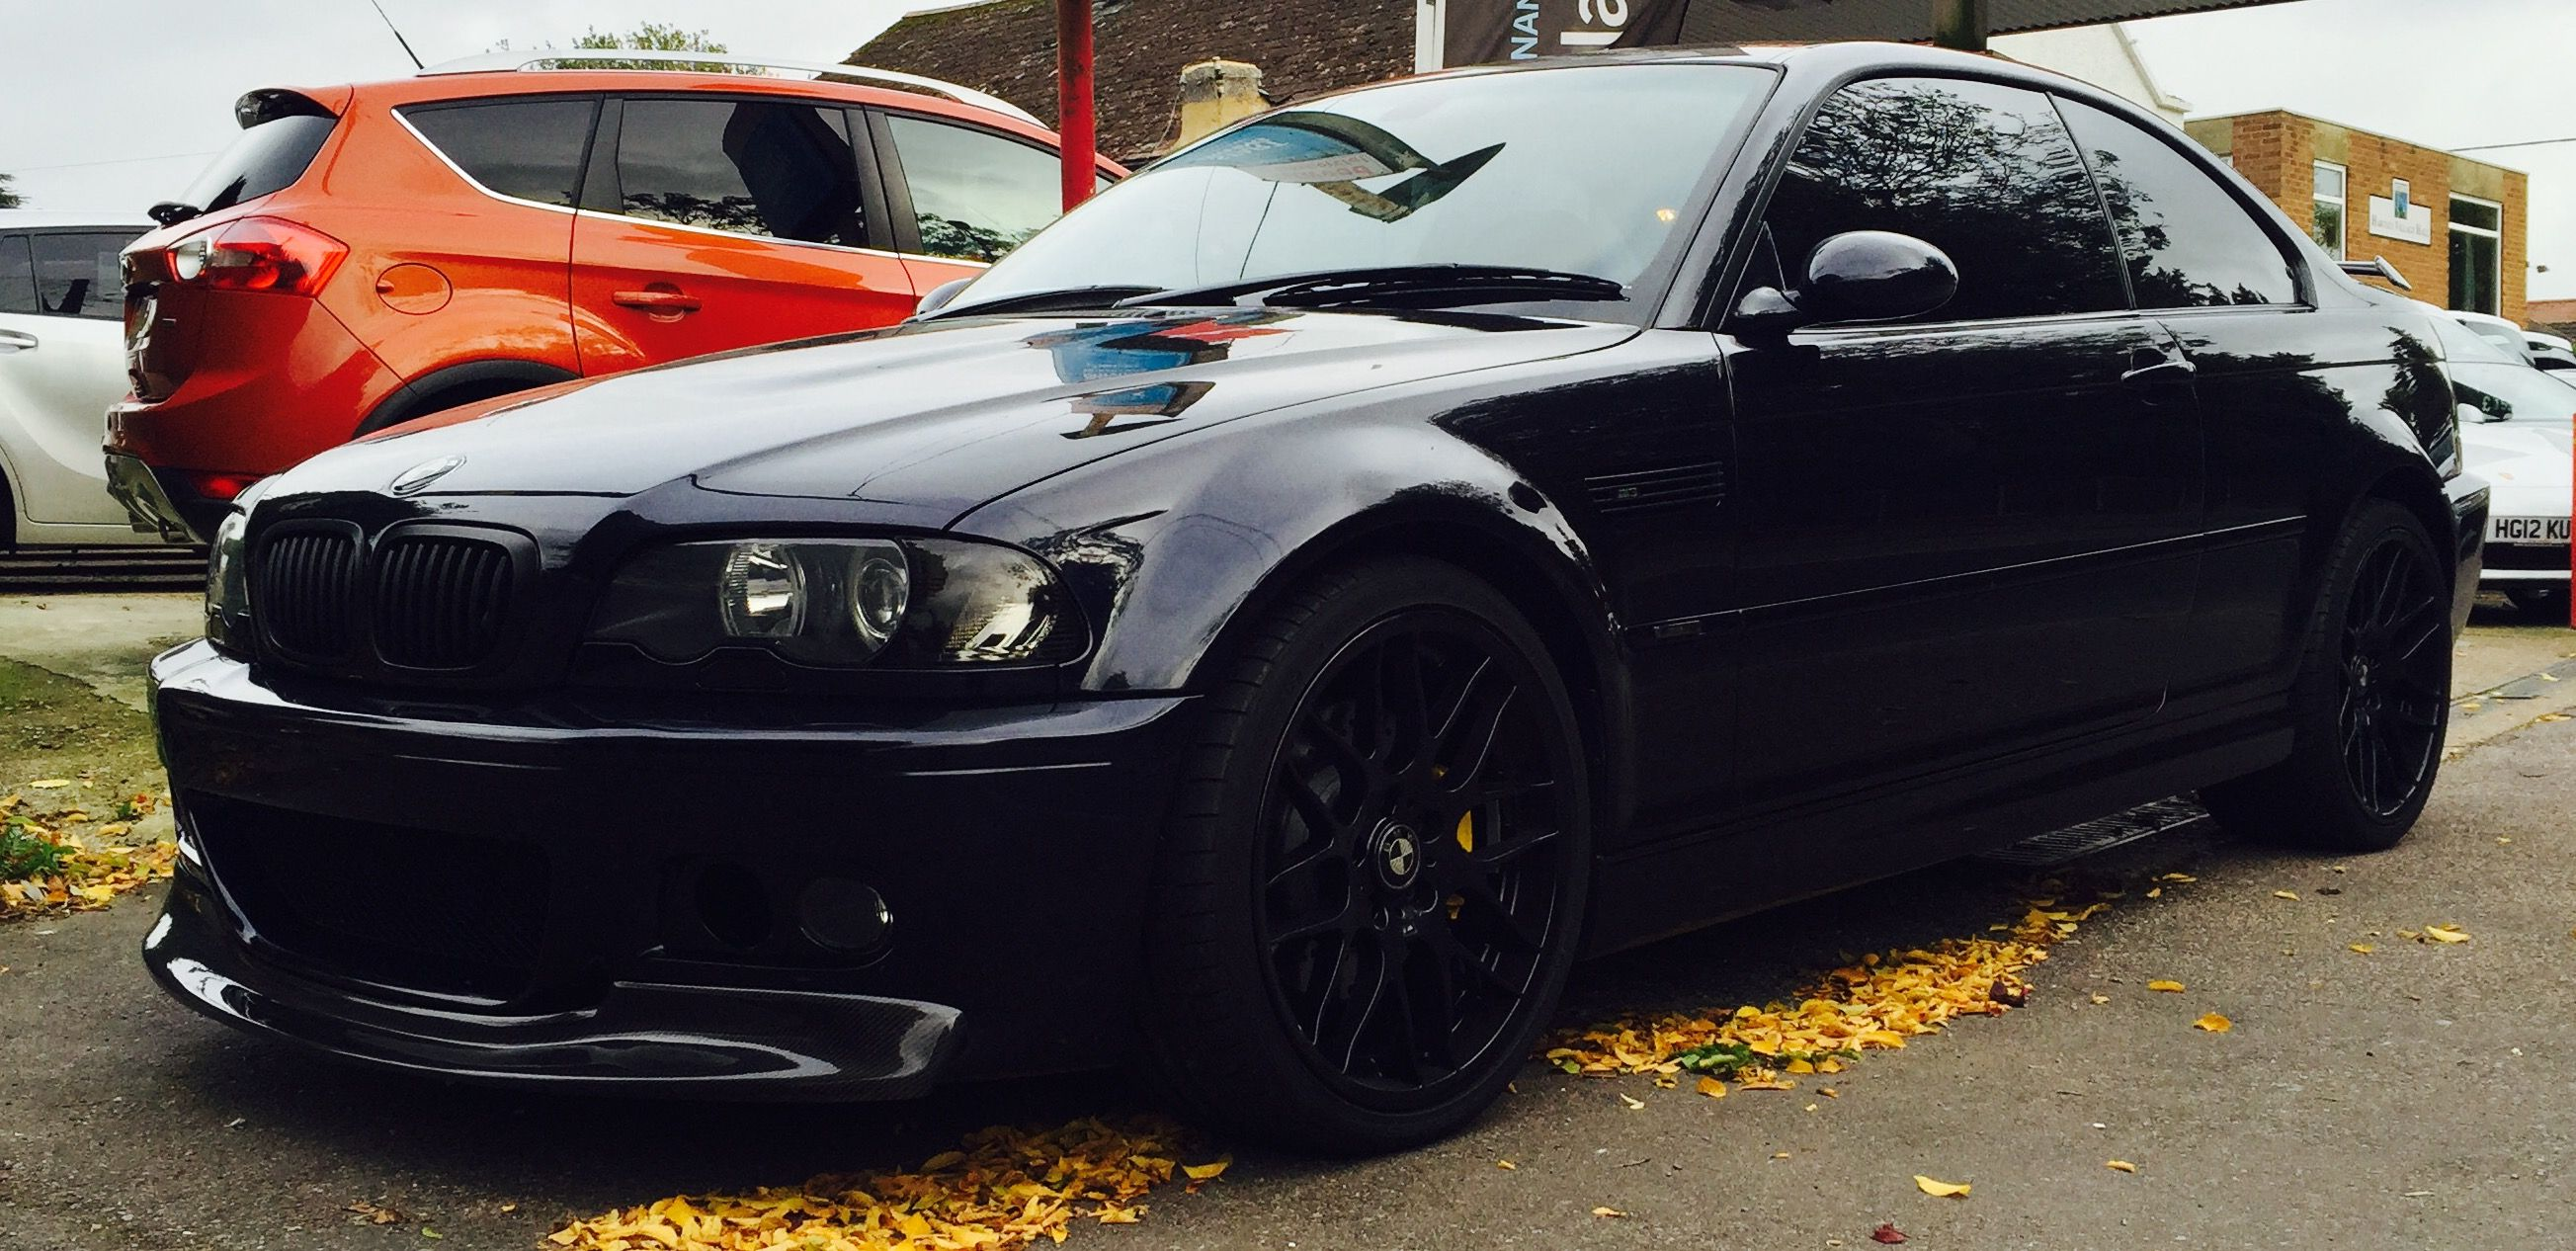 Bmw m3 call us to finance your next car zero deposit pay